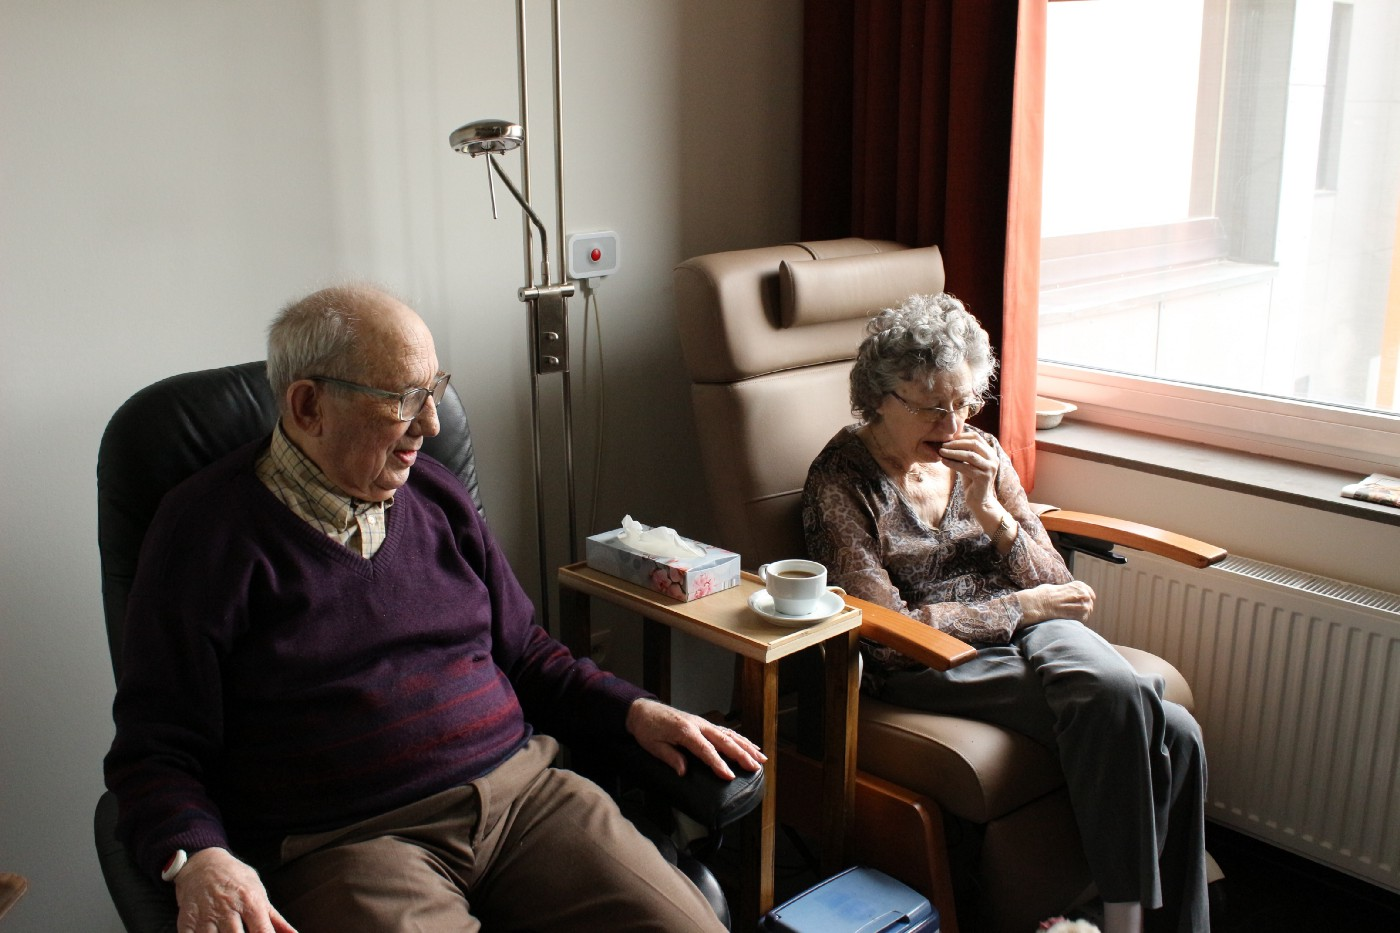 Elderly couple in their room